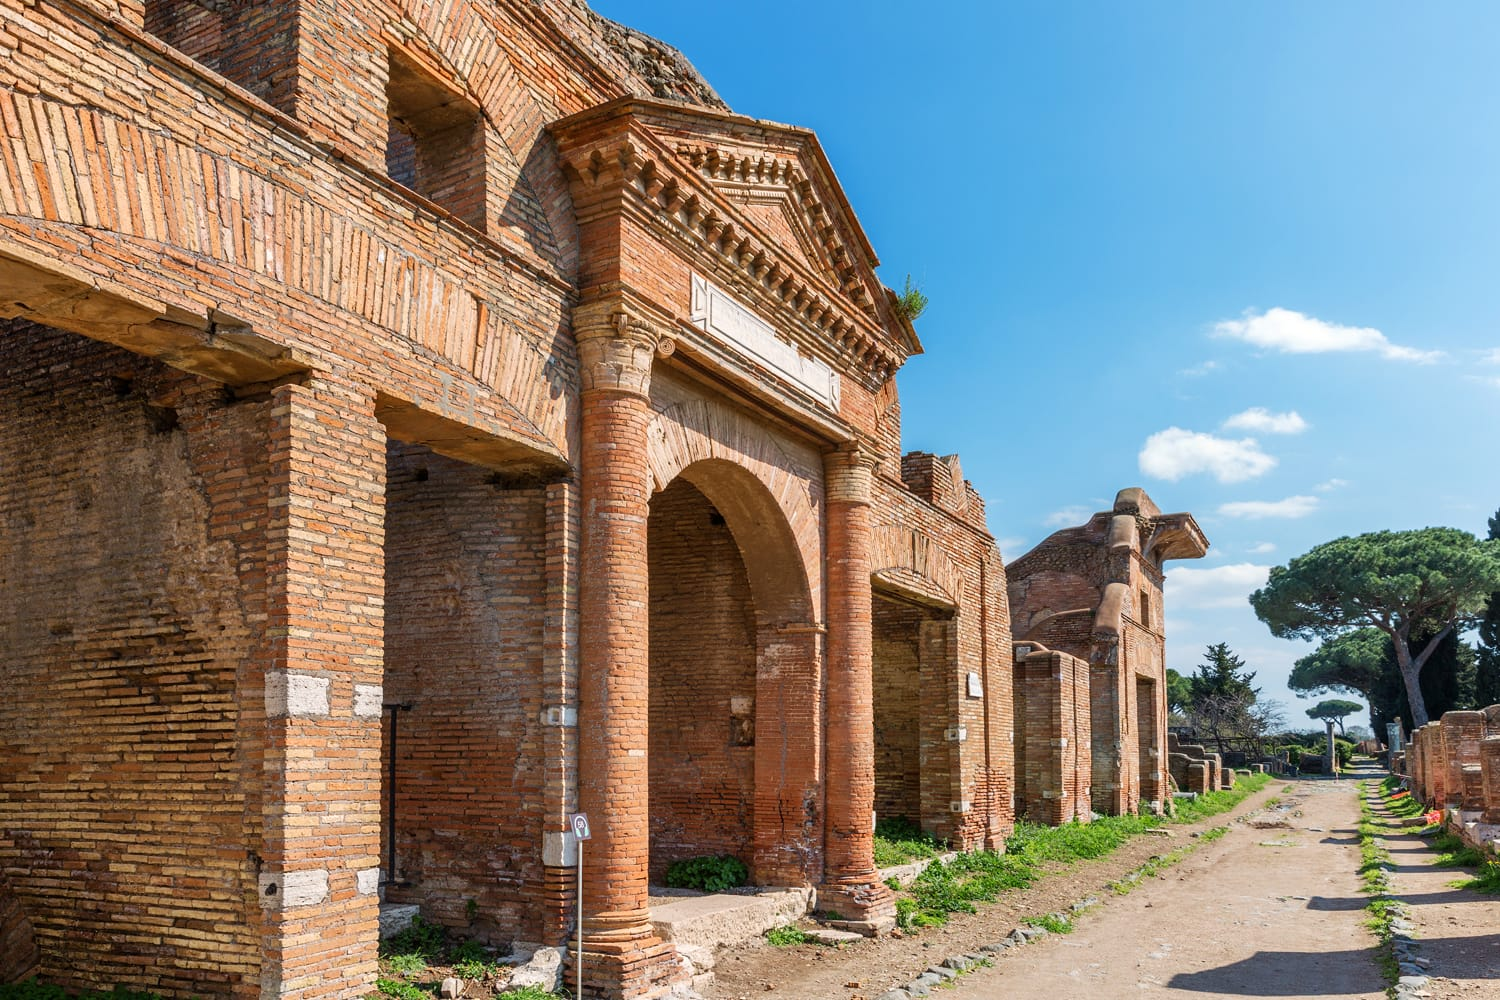 Roman ancient ruins in Ostia Antica, near Rome, Italy